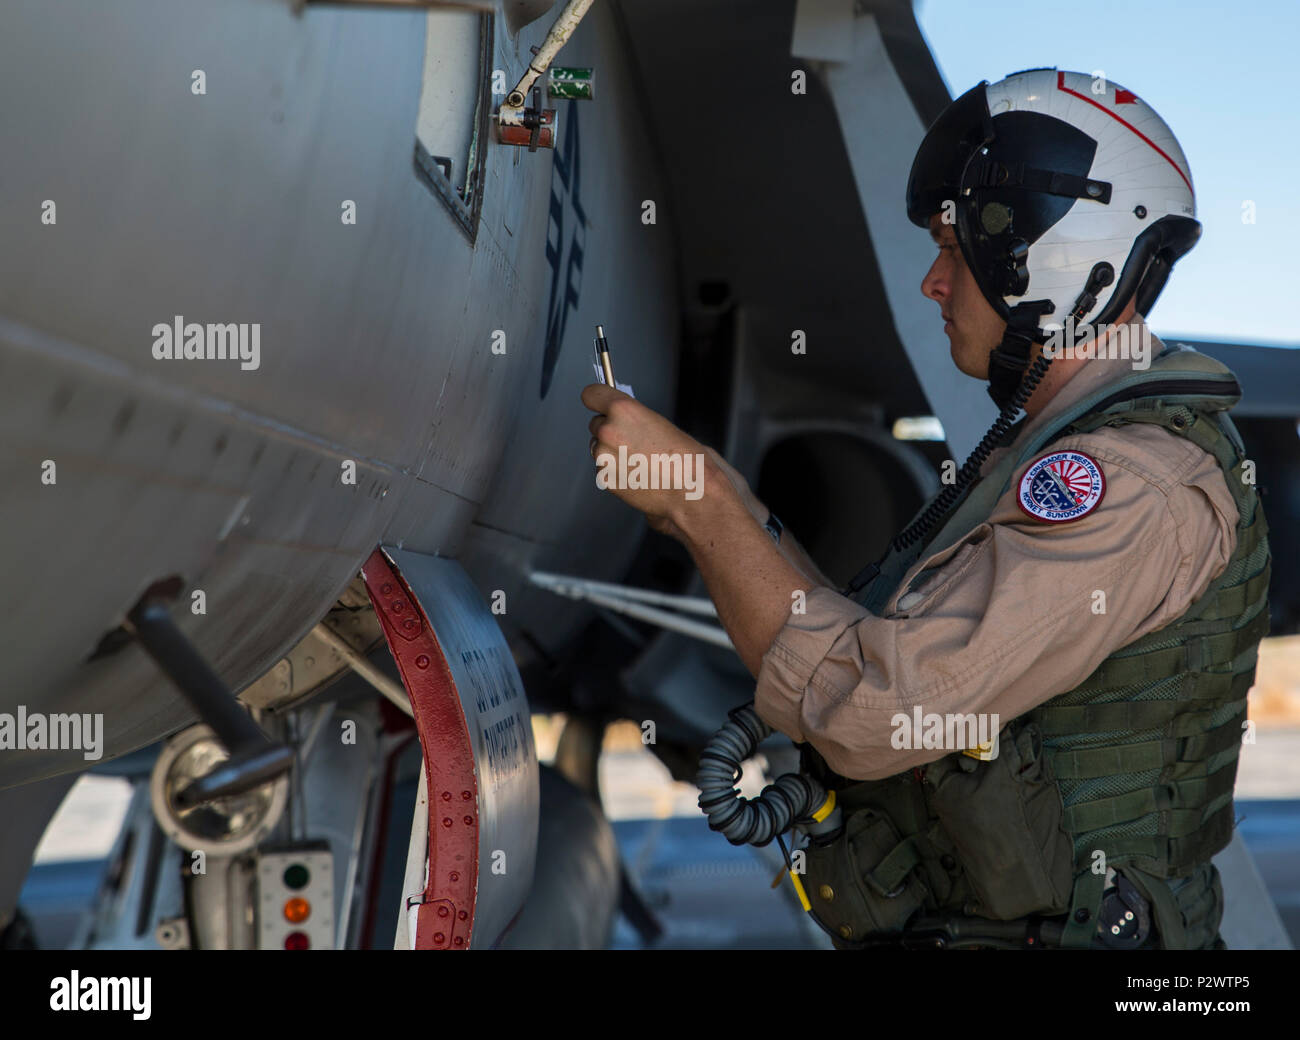 U.S. Marine Corps Capt. Daniel Lane, Marine Fighter Attack Squadron (VMFA) 122 pilot, conducts a preflight check on an F/A-18C Hornet during Exercise Pitch Black 2016 at Royal Australian Air Force Base Tindal, Australia, Aug. 1, 2016. Pitch Black 16 is a biennial, three week, multinational, large-force training exercise hosted by RAAF Tindal. As the training progresses, the U.S. pilots will also get the opportunity to fly with Canada, France, Germany, Indonesia, Netherlands, New Zealand and Thailand. (U.S. Marine Corps photo by Cpl. Nicole Zurbrugg) - Stock Image